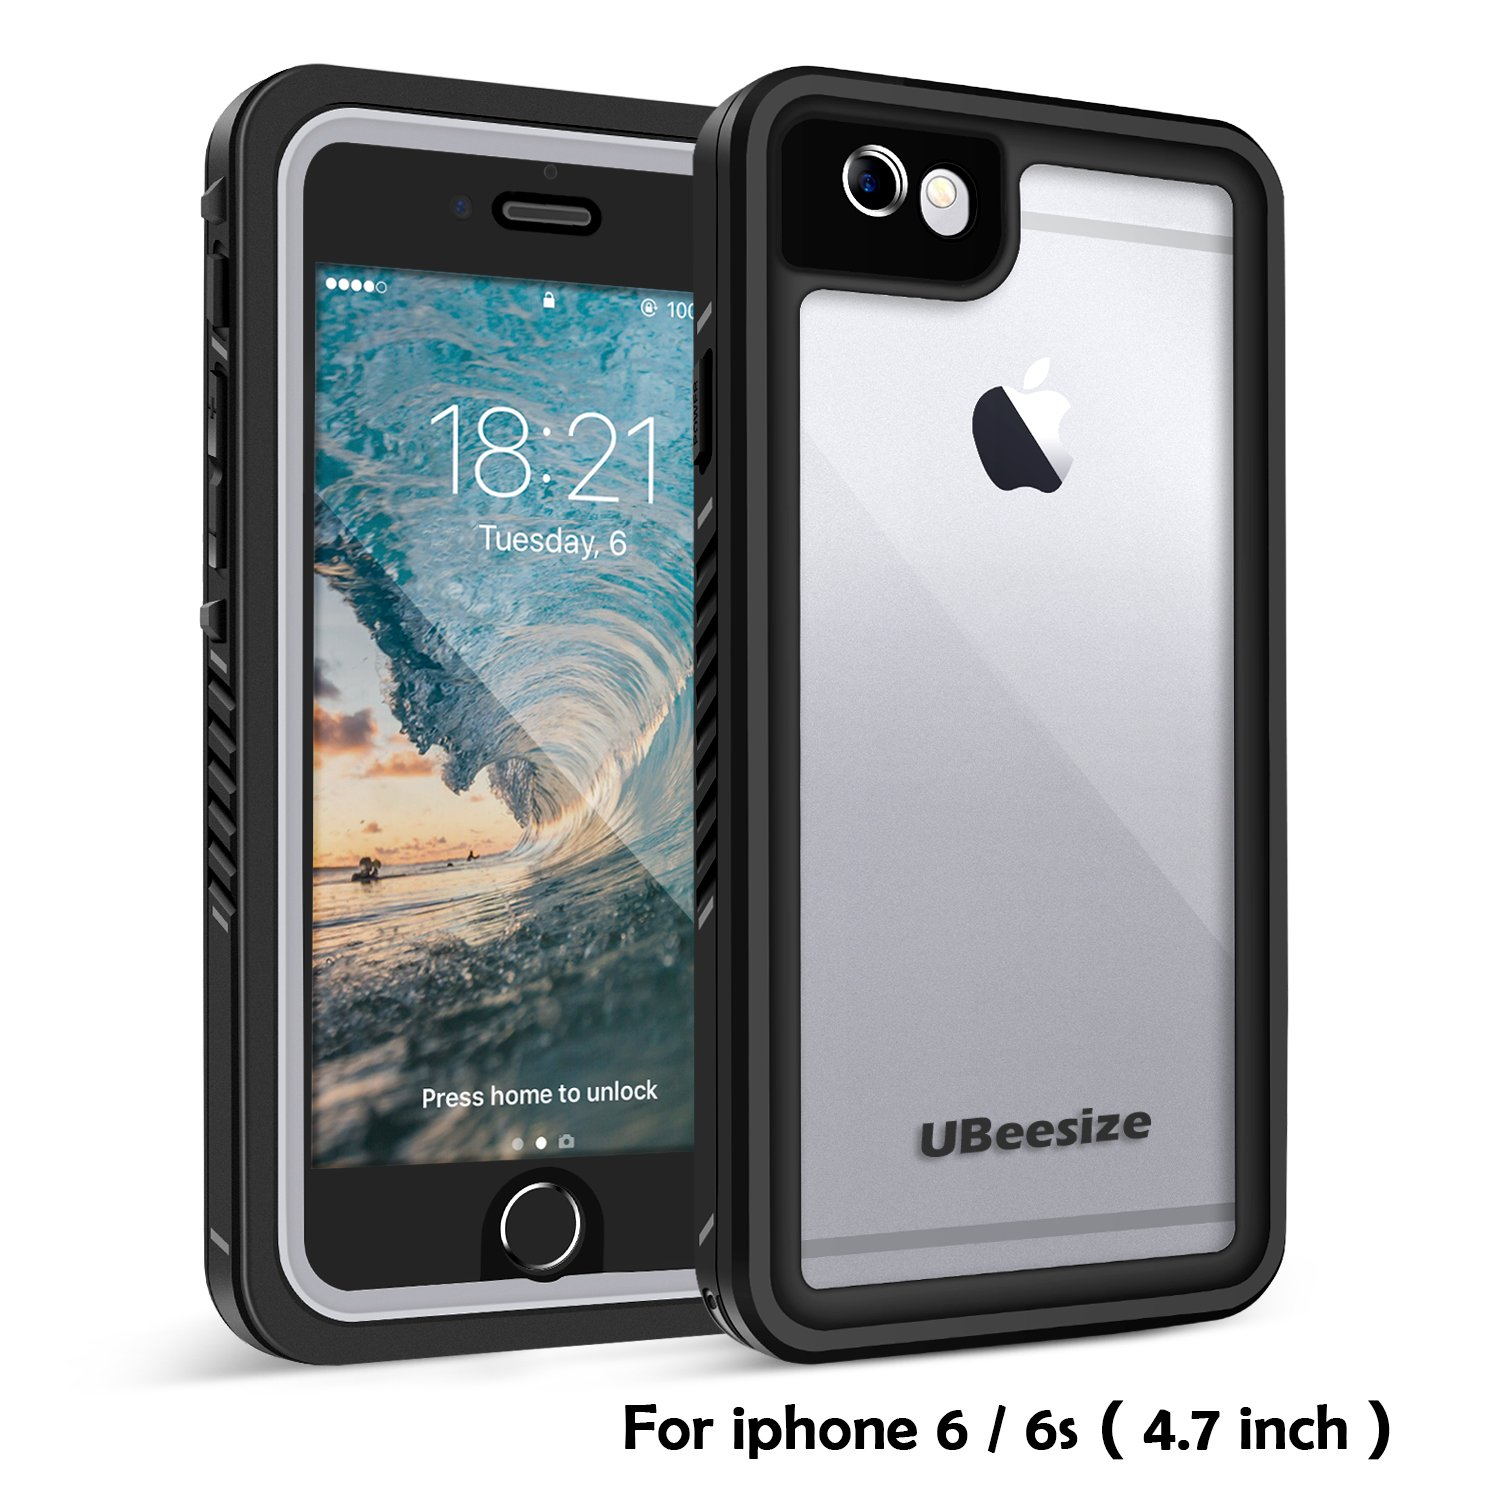 Waterproof case for iPhone 6 / 6s, UBeesize Transparent Shockproof Underwater Cover Full Body Protective Drop Resistant Heavy Duty Case for iPhone 6/6s (4.7in)